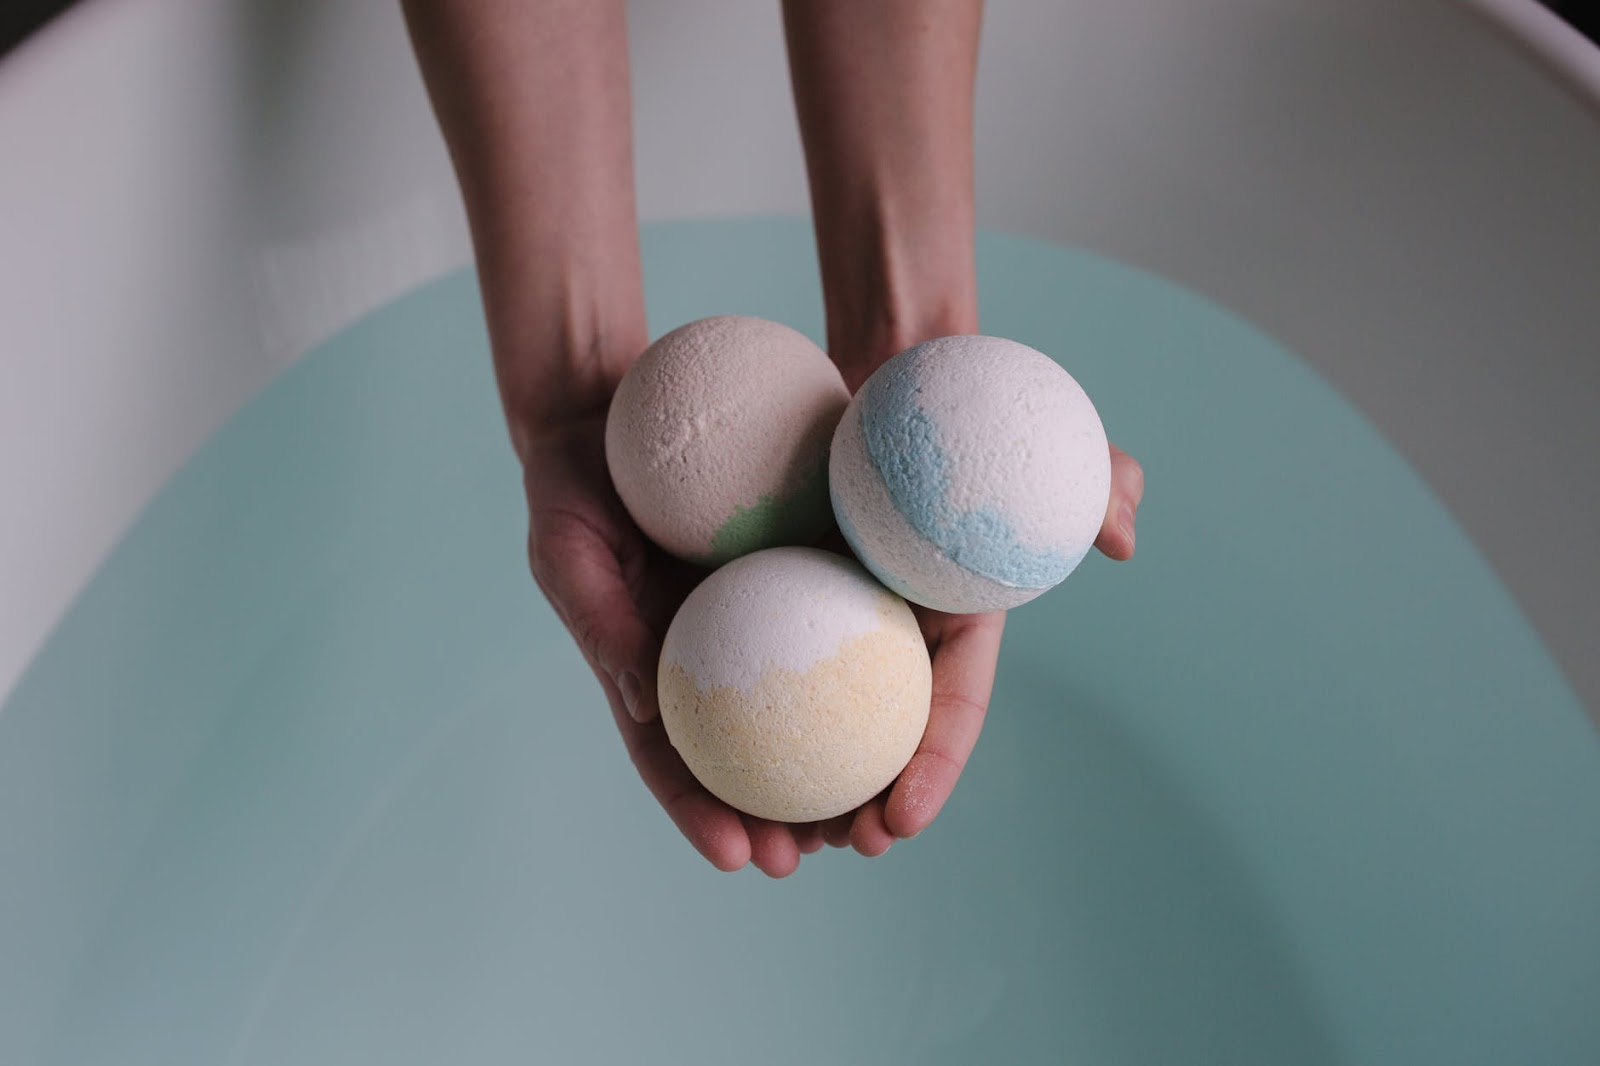 How to Make DIY Lush Bath Bombs Without Citric Acid? 3